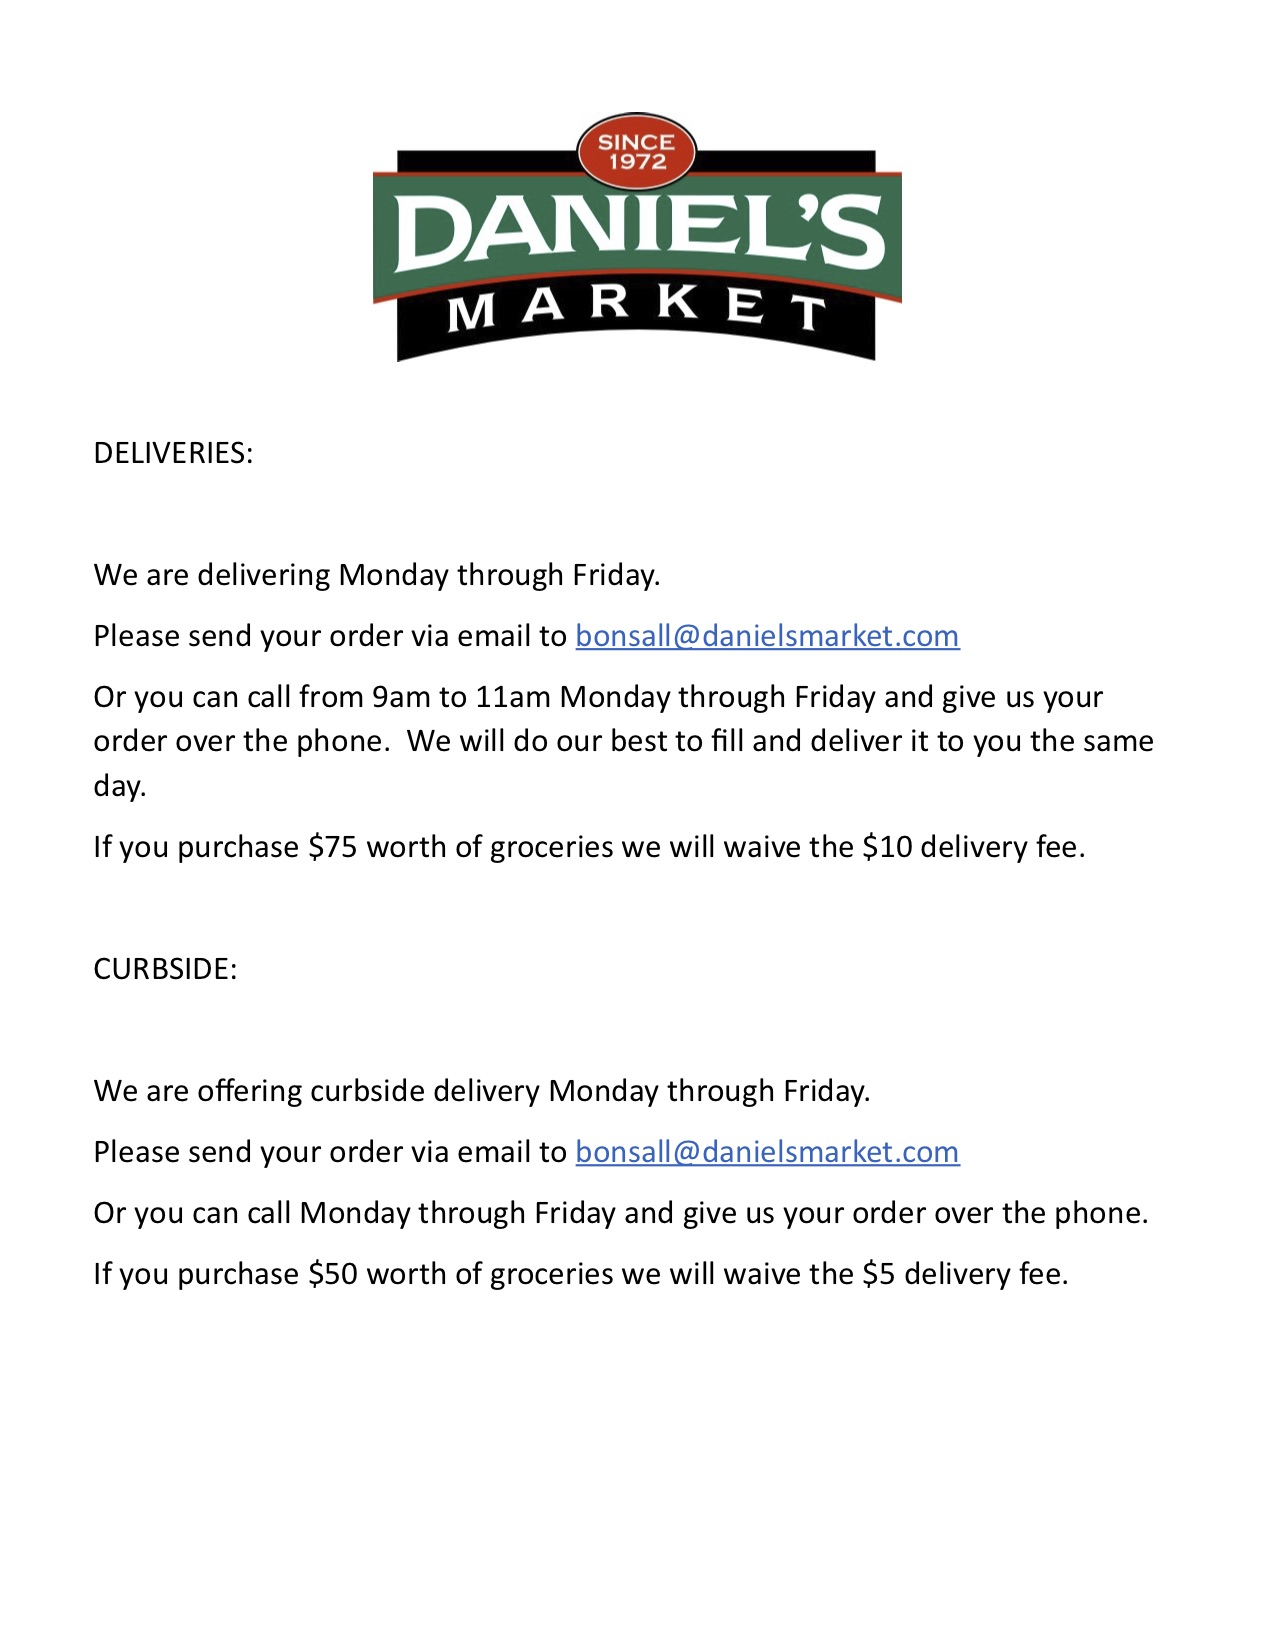 DELIVERIES: